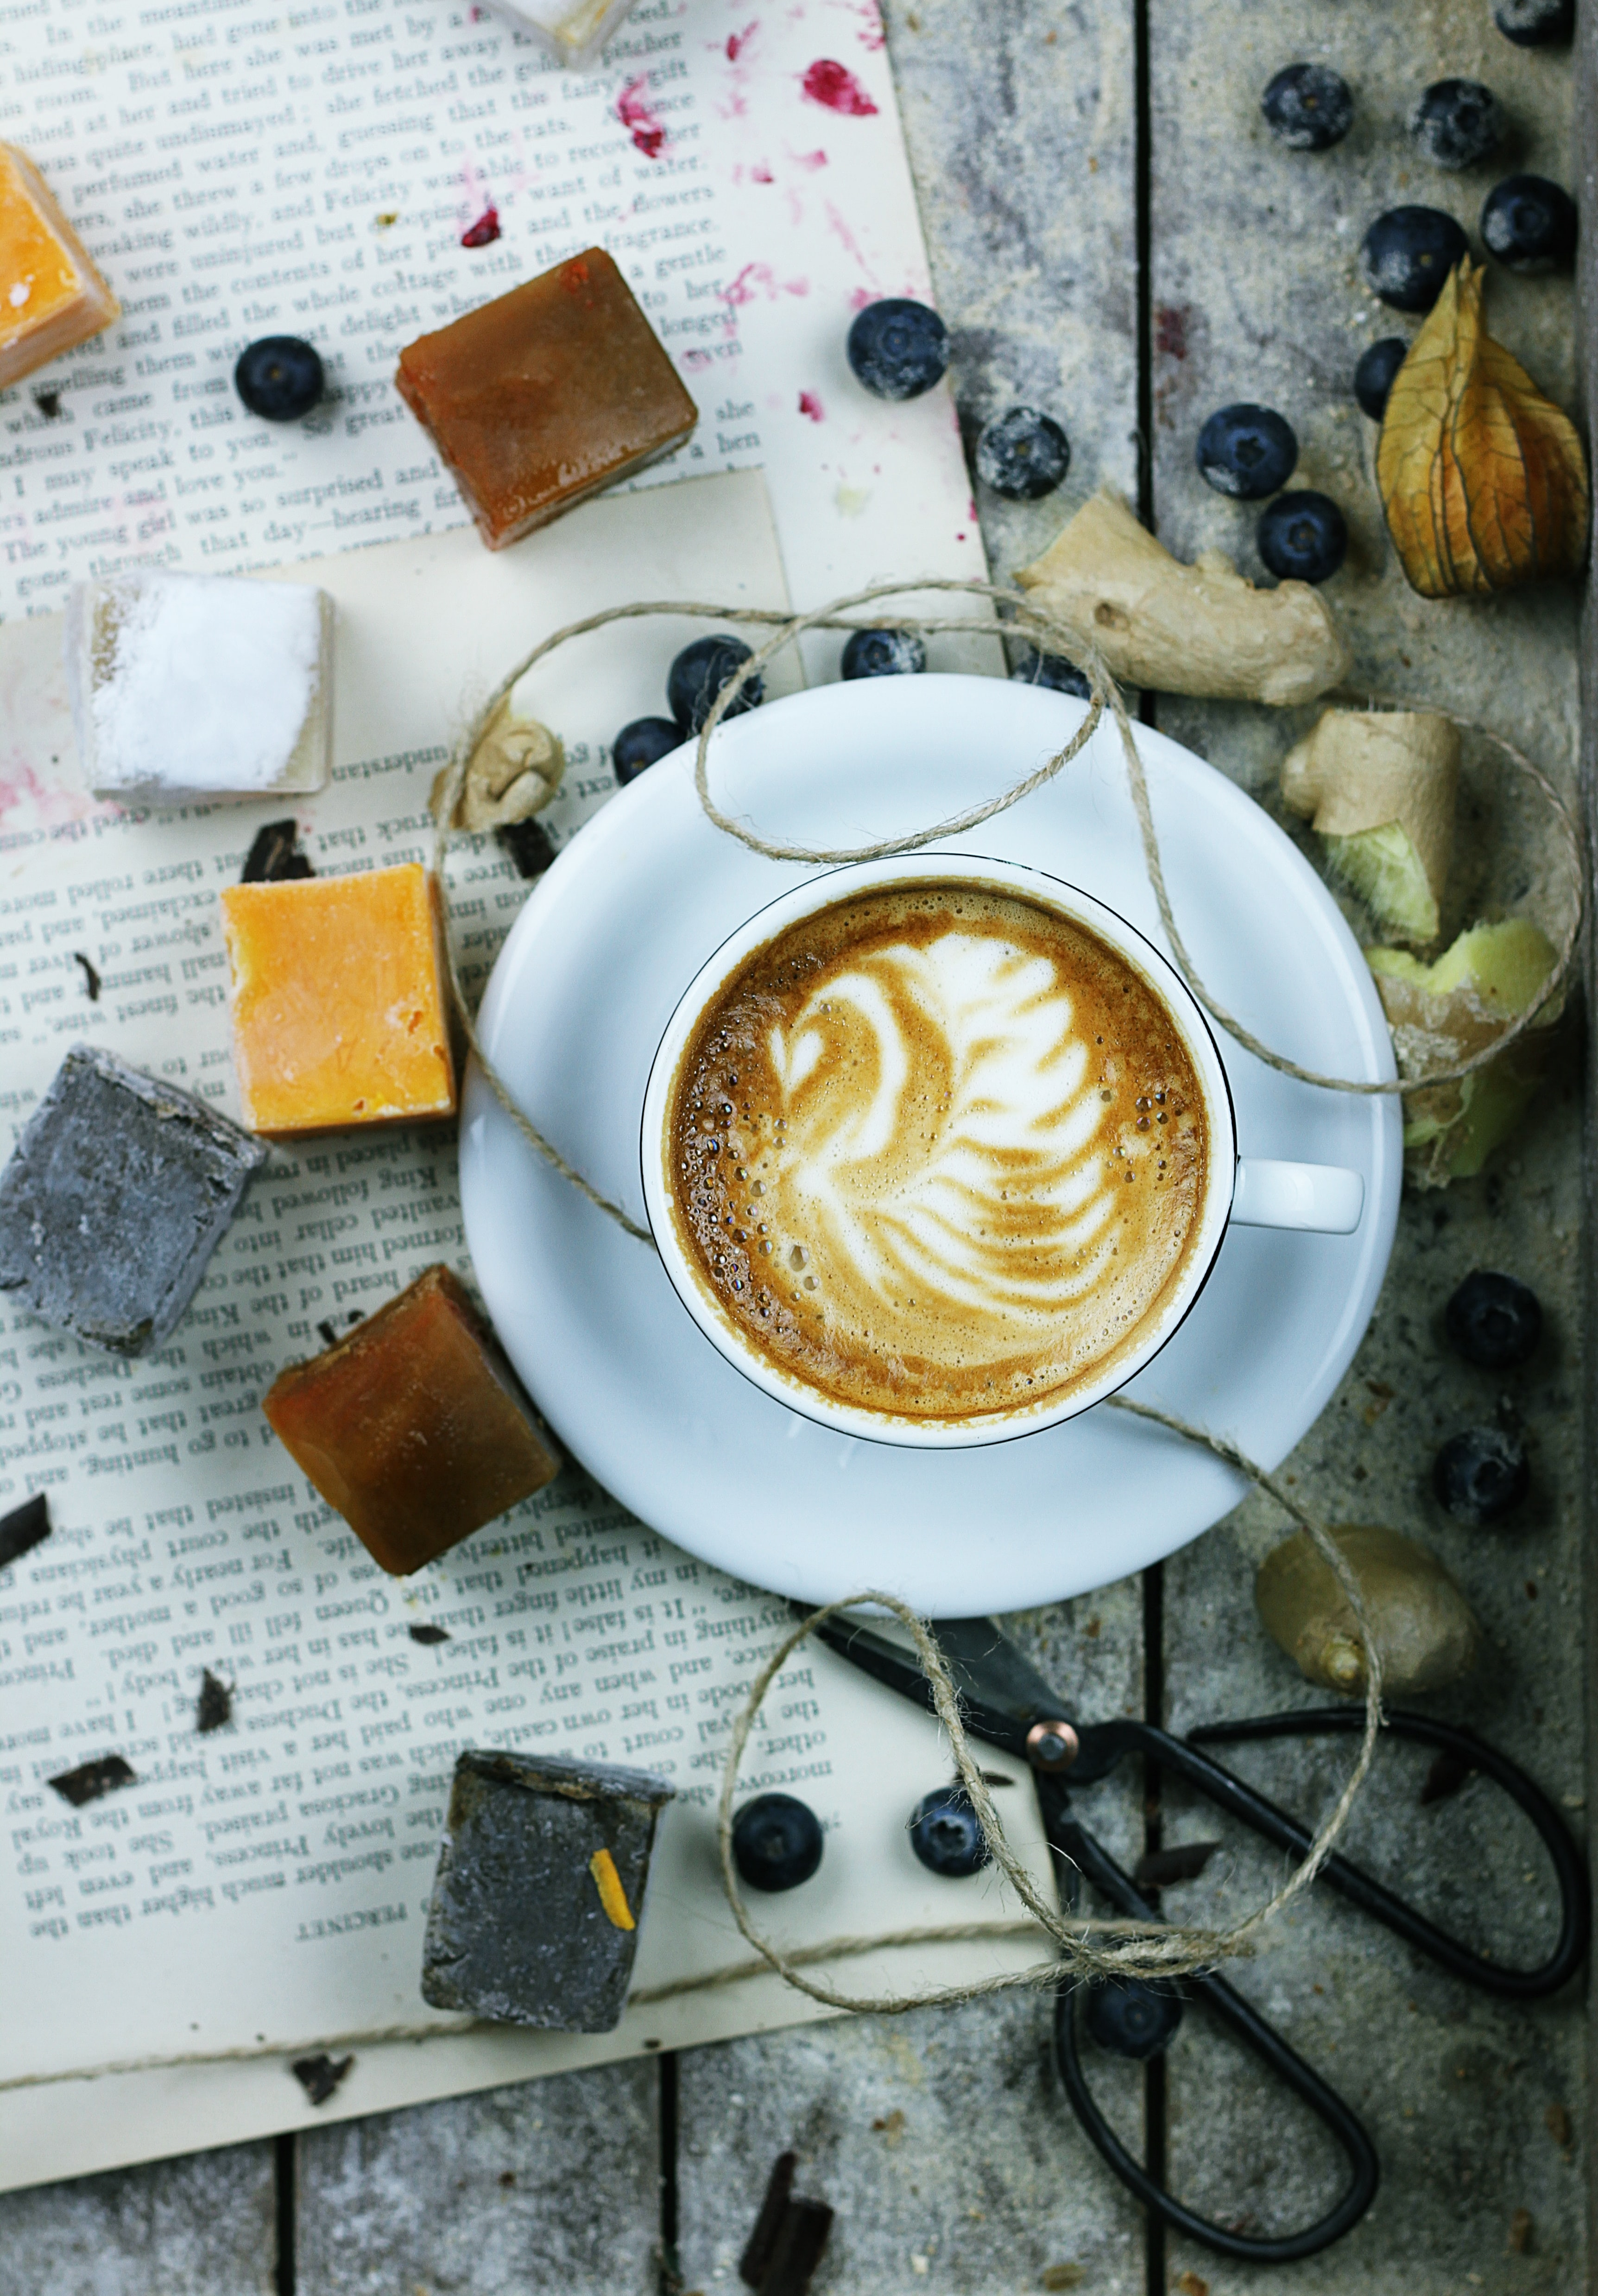 An overhead shot of a cup of coffee with latte art surrounded by blueberries and various trinkets